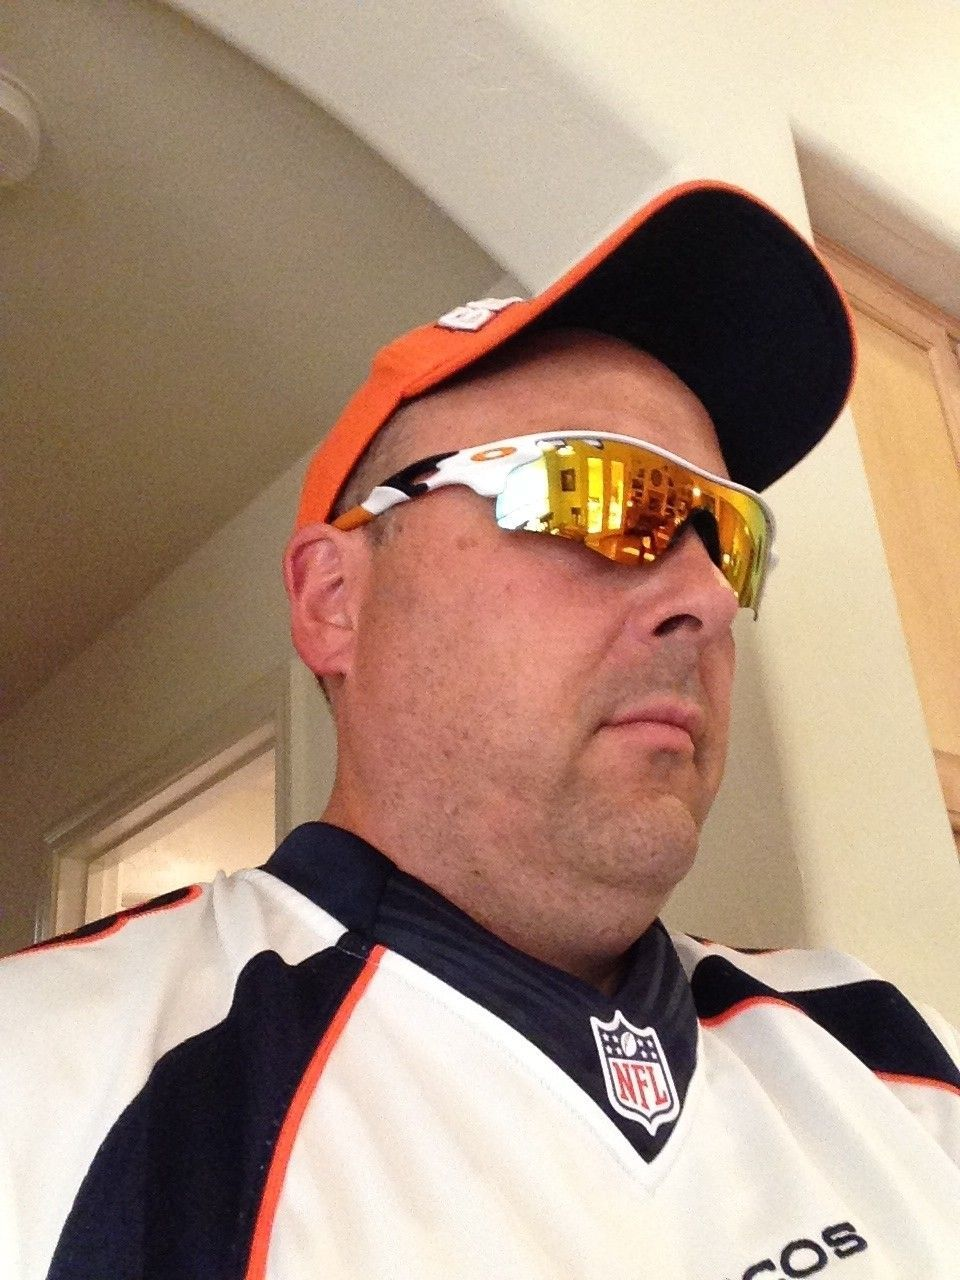 Football Season- Another Excuse For New Glasses - GTJBzN.jpg